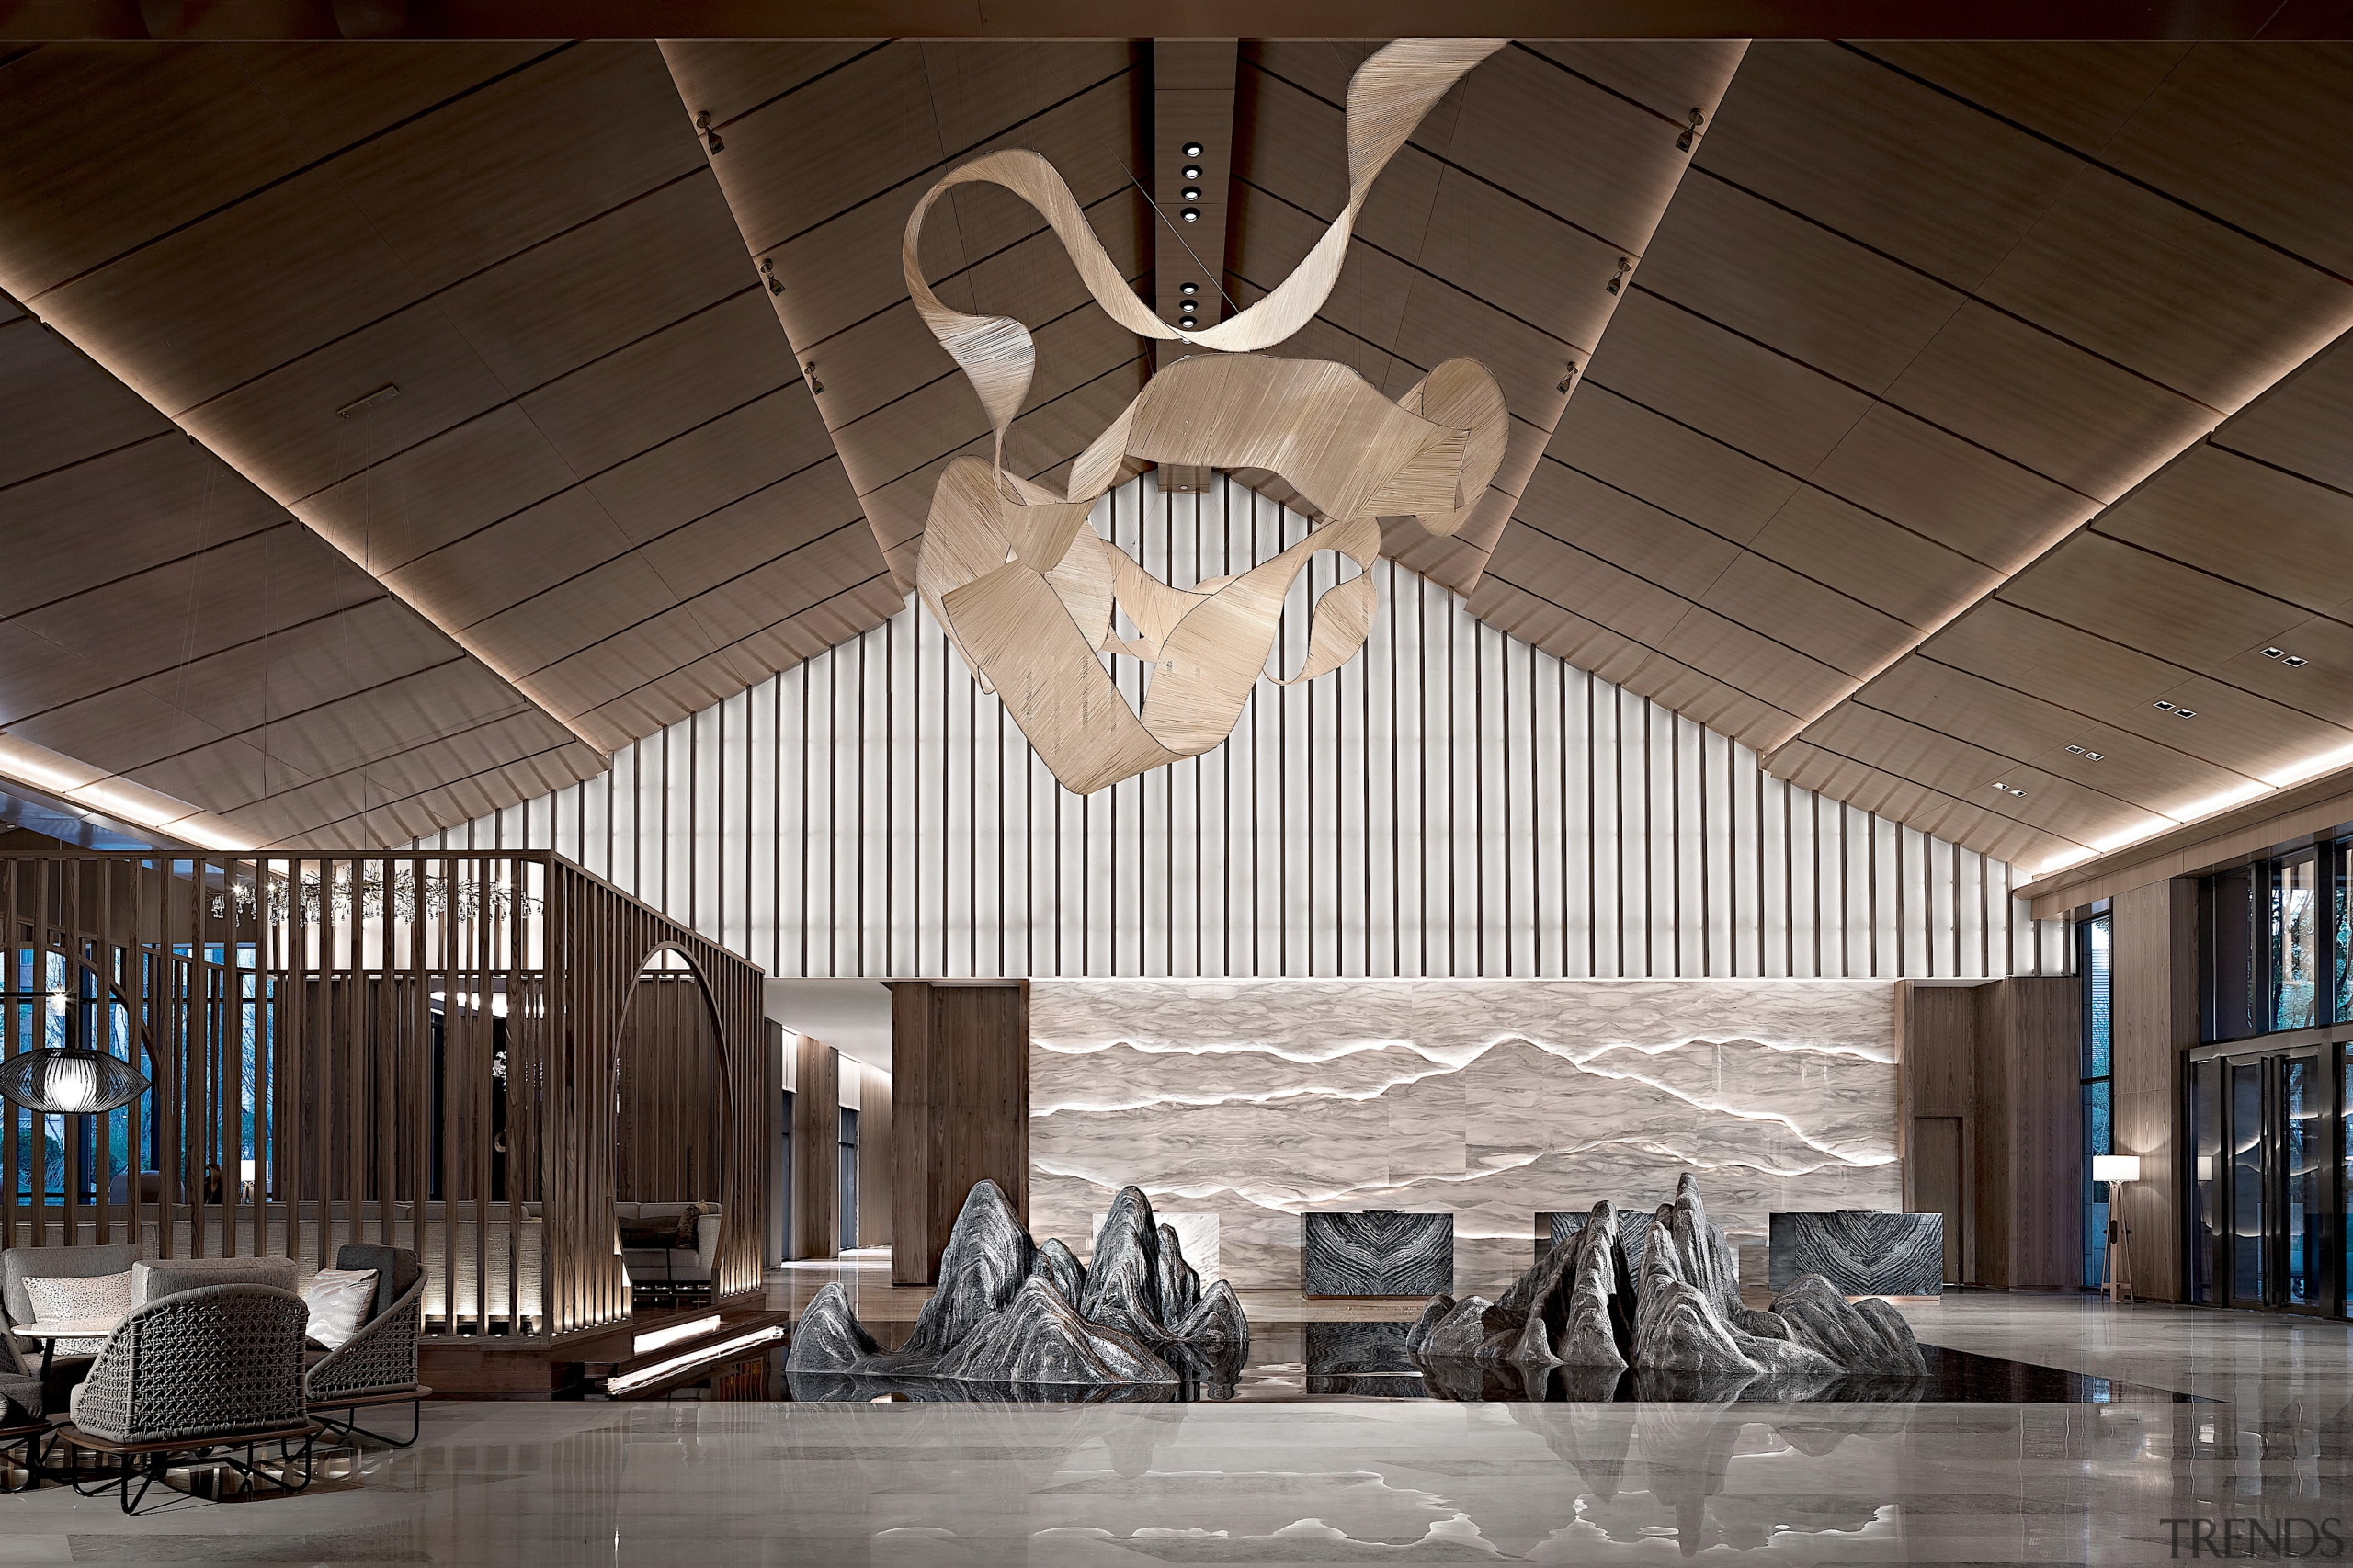 The lobby design is inspired by the local